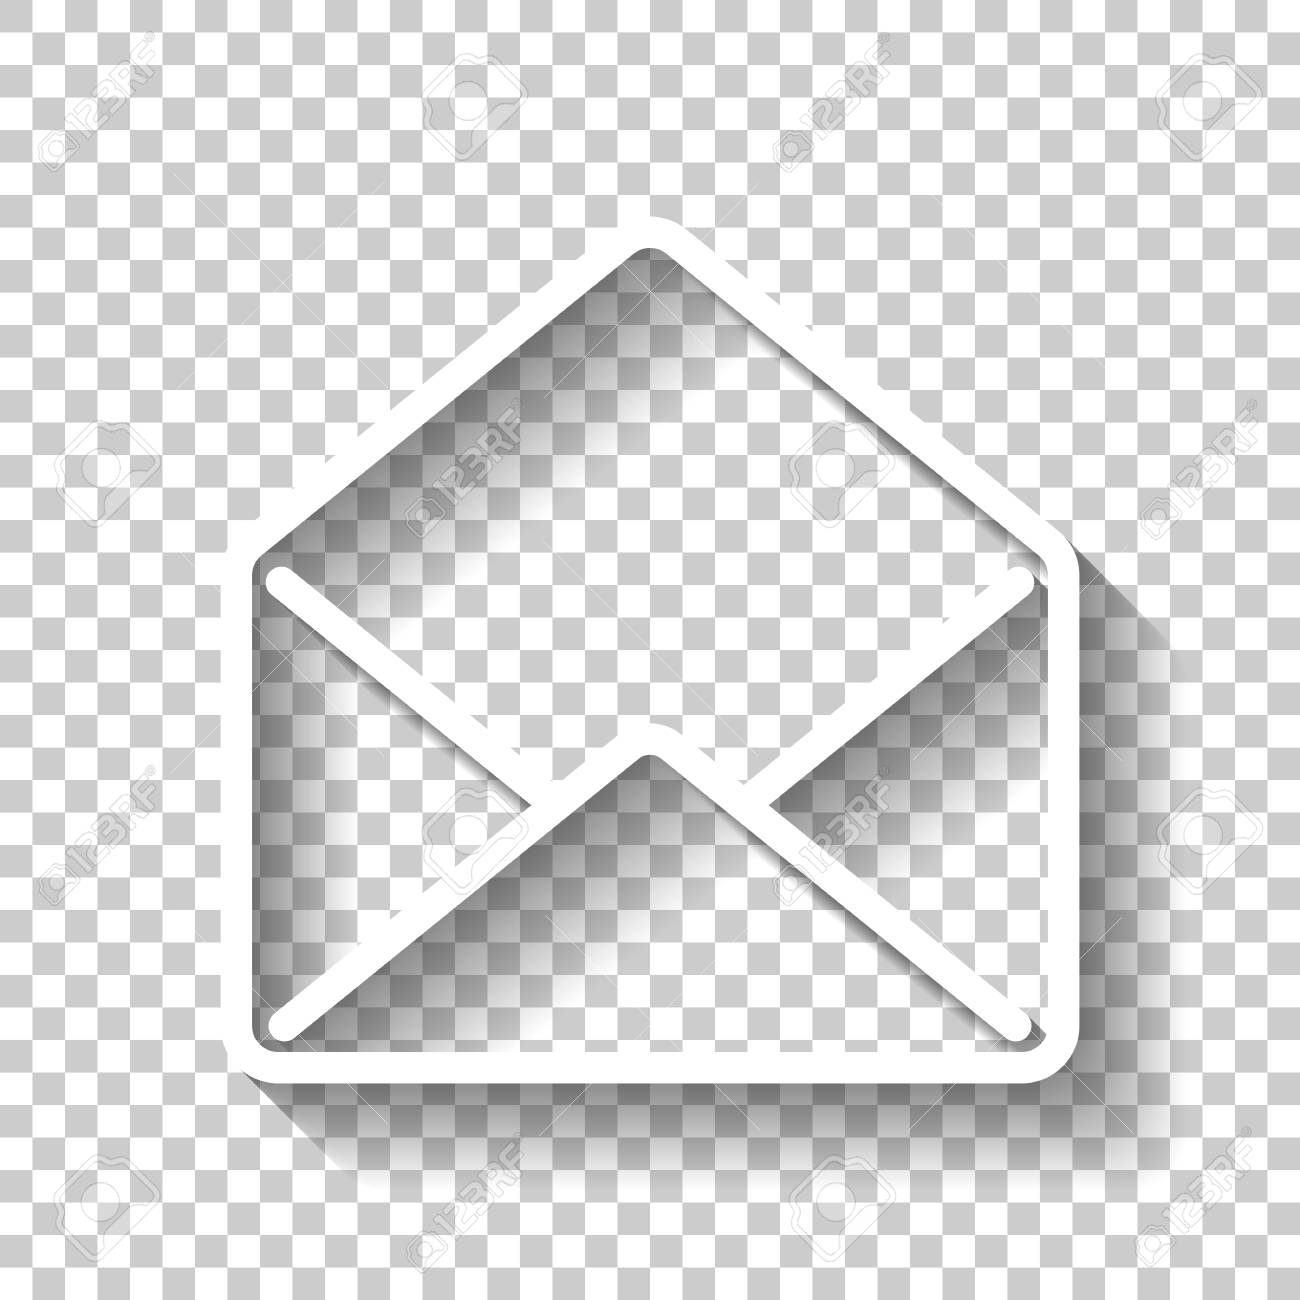 mail open icon. White icon with shadow on transparent background Stock Vector - 96761286